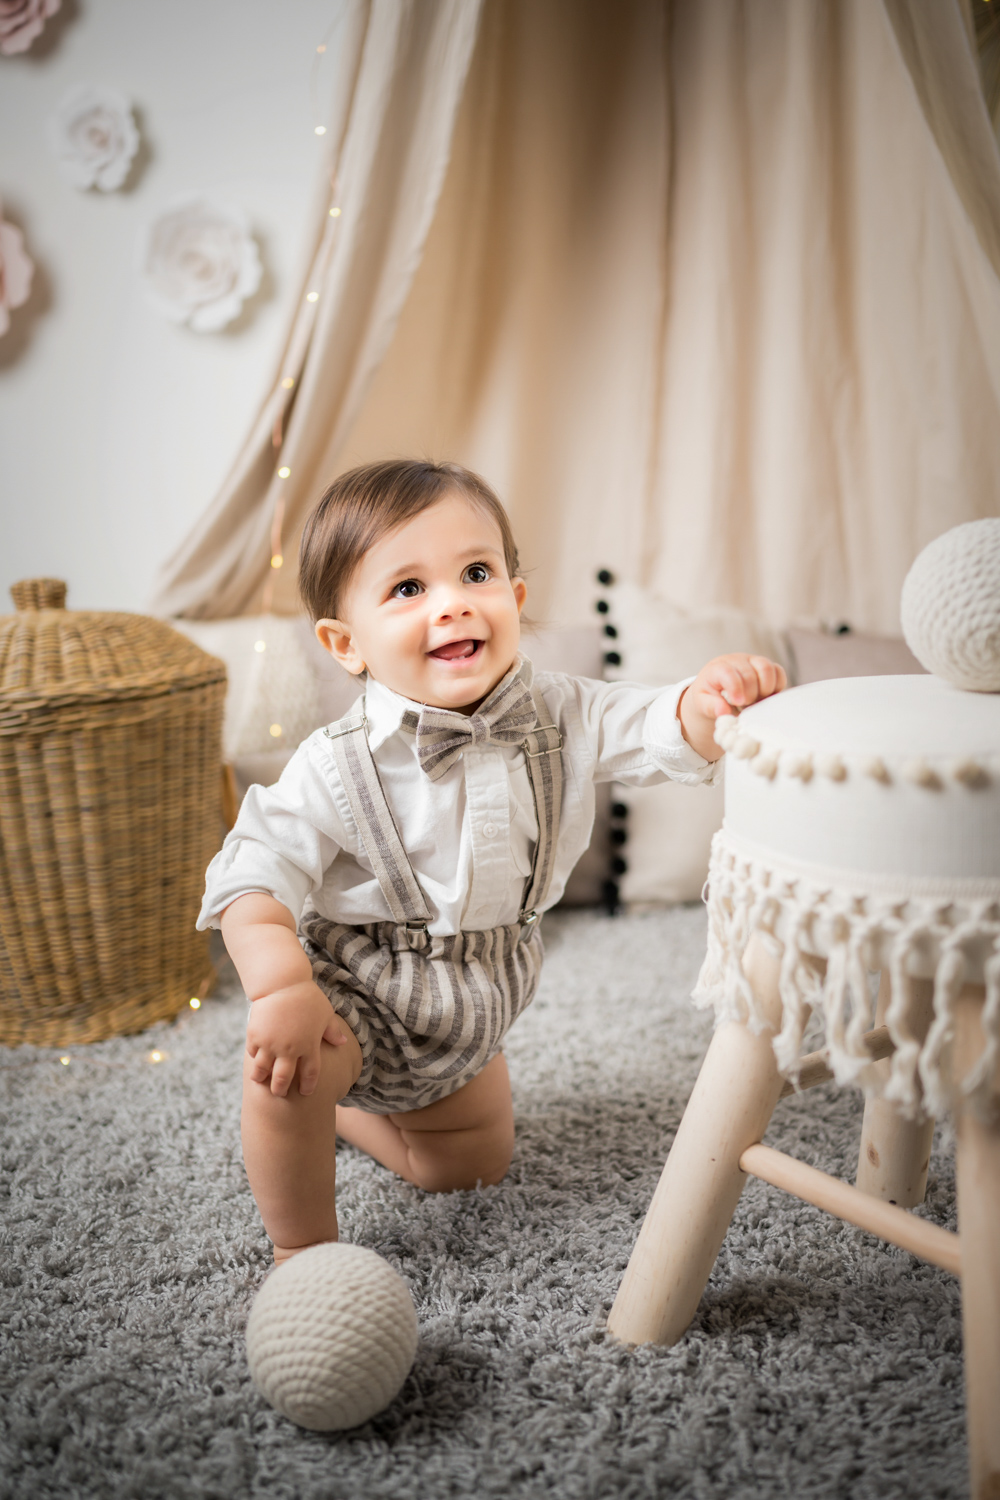 Baby kneels on shag carpet during baby photoshoot.